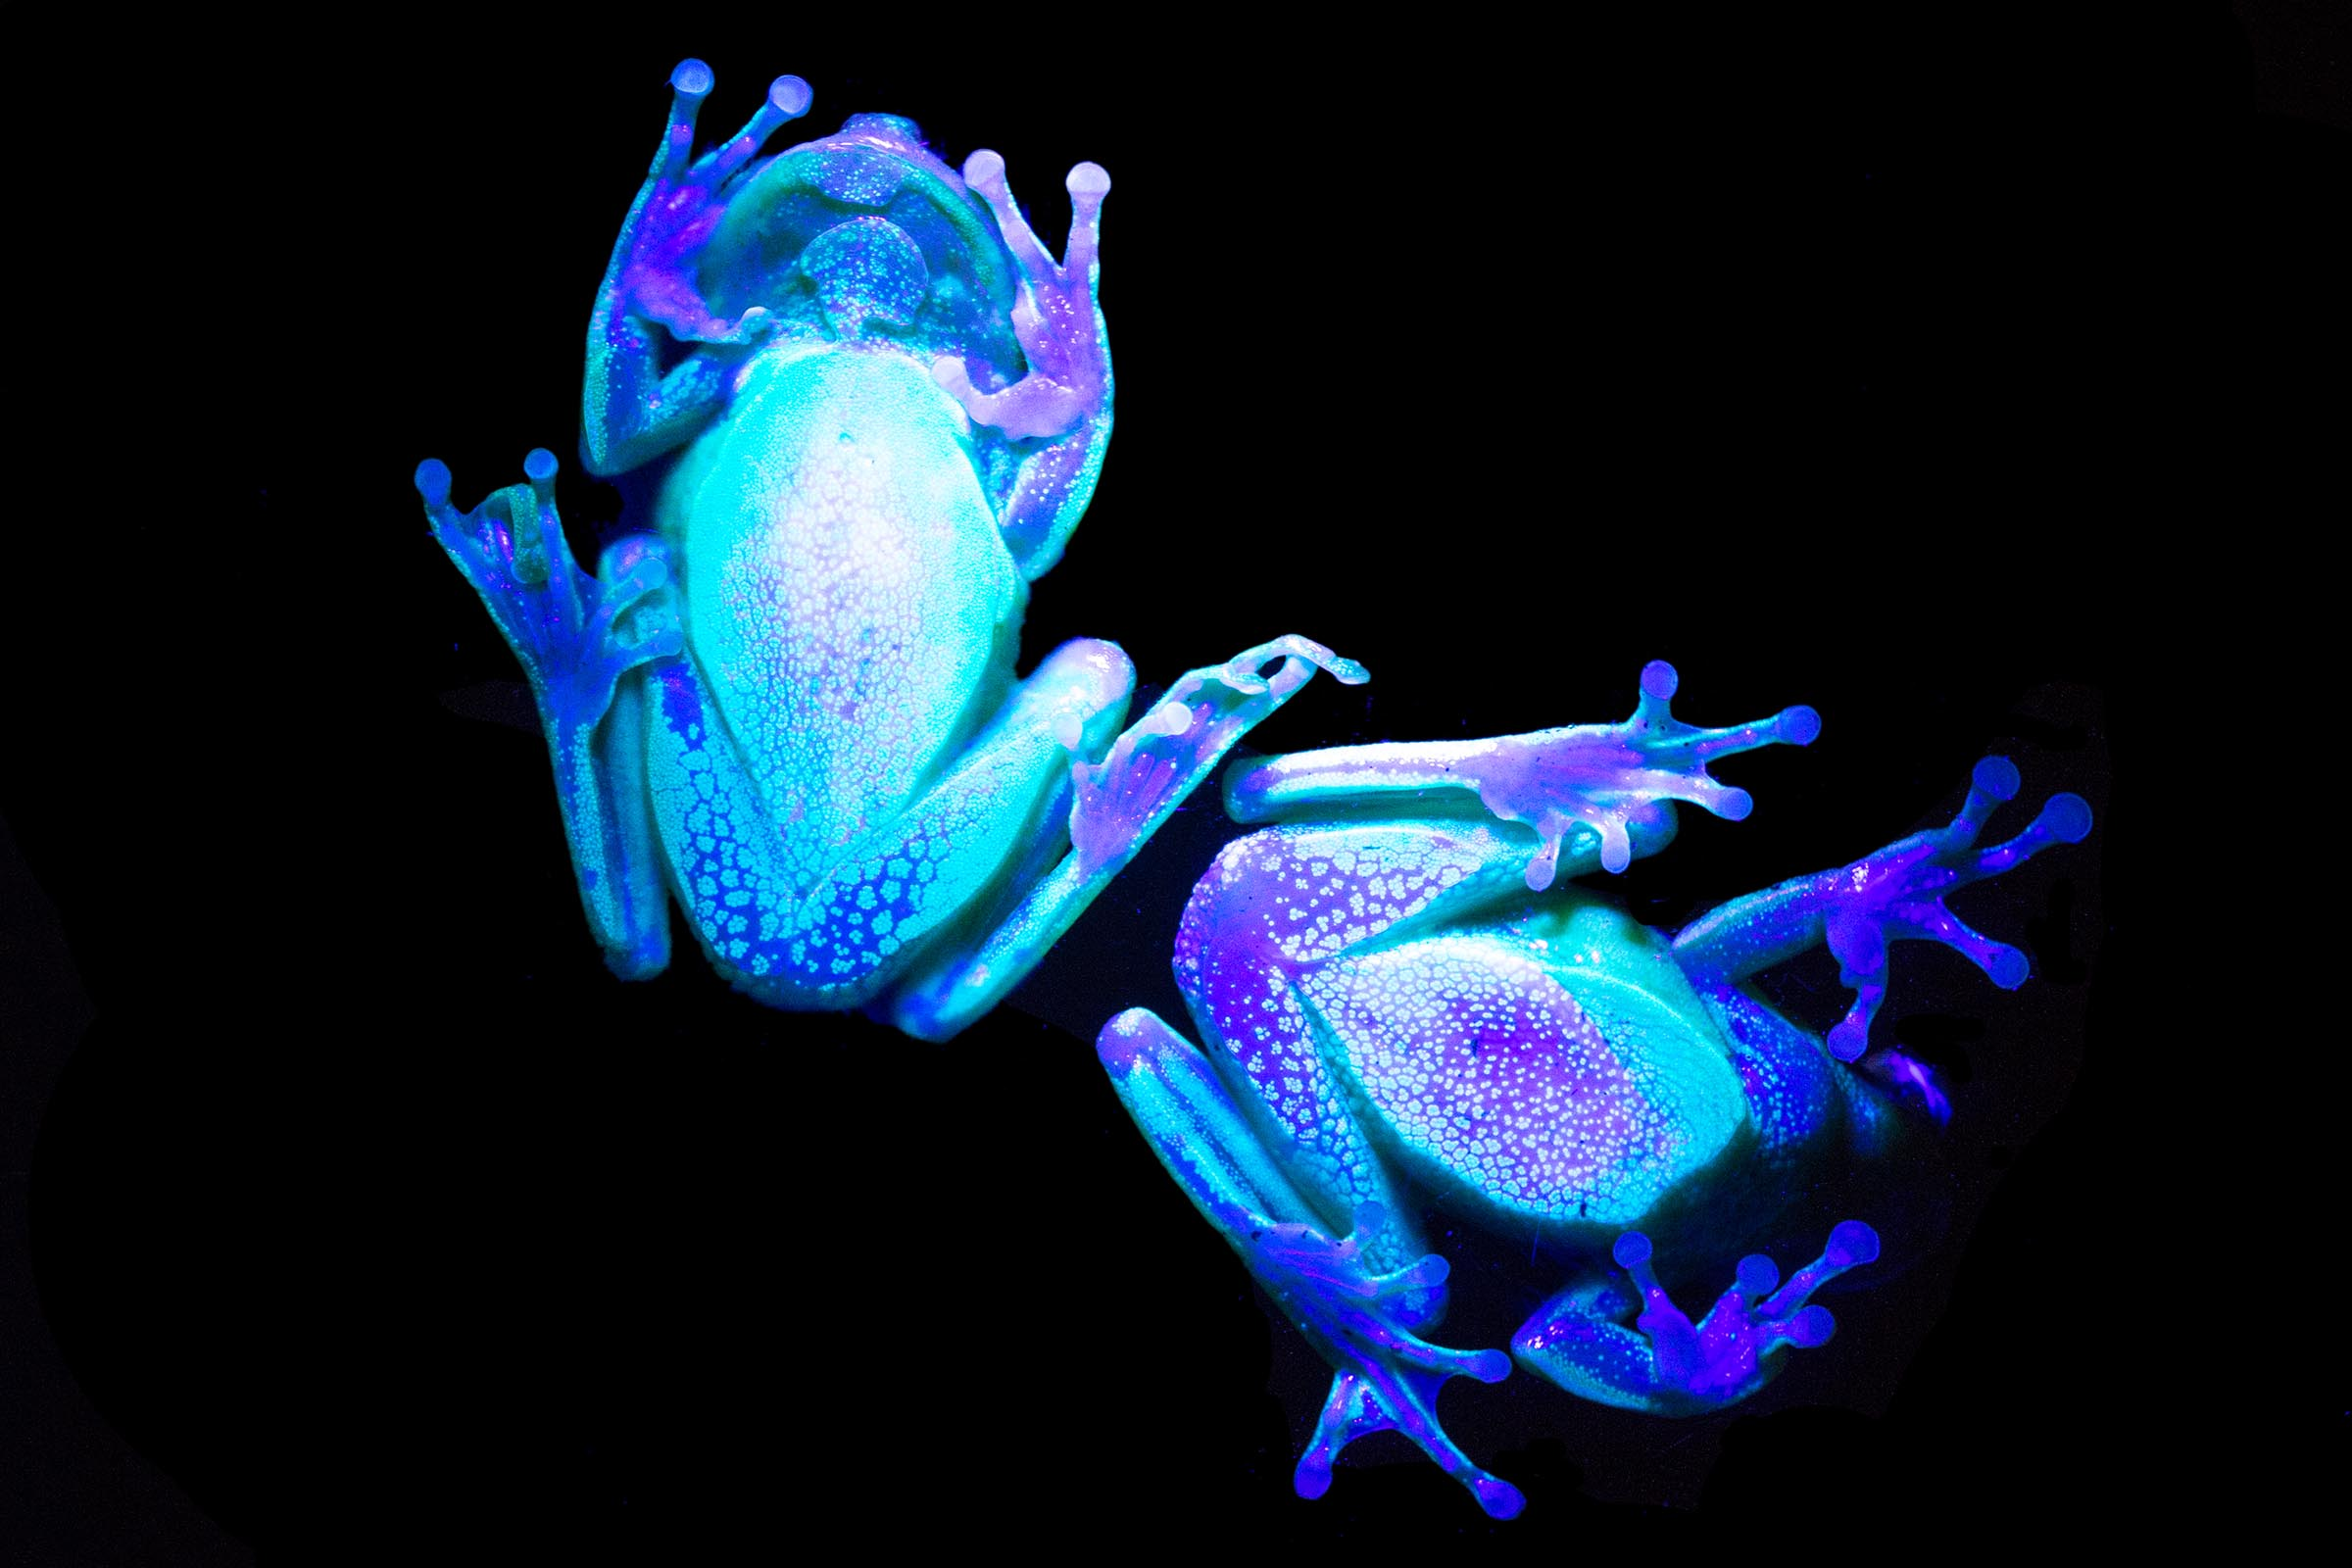 Two frogs seen from below a glass surface, under a black light. They fluoresce shades of bright blue and purple.